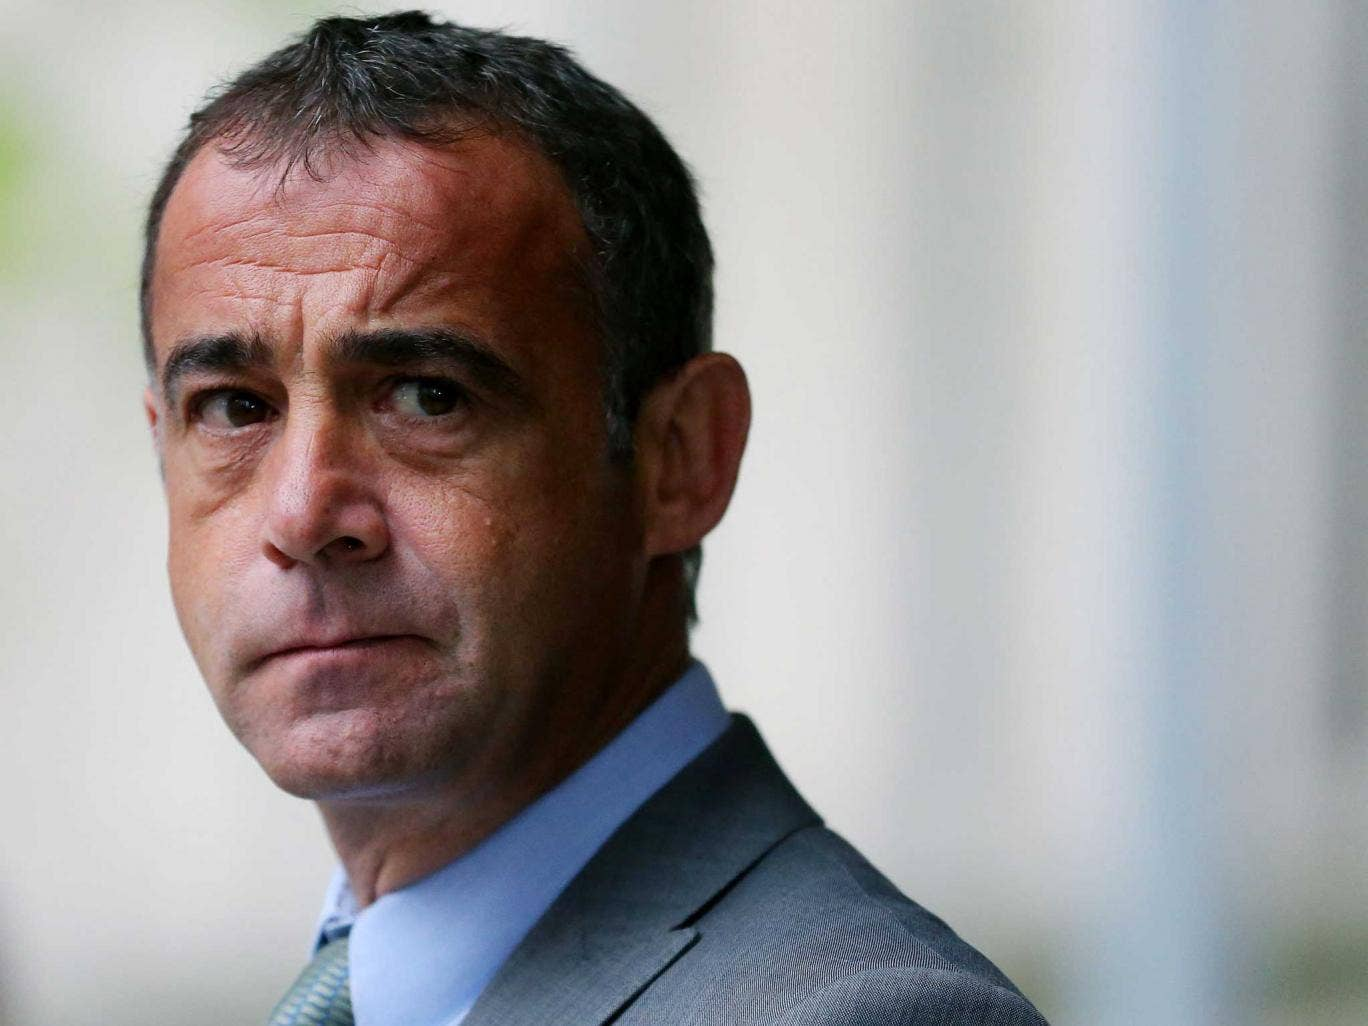 Coronation Street star Michael Le Vell